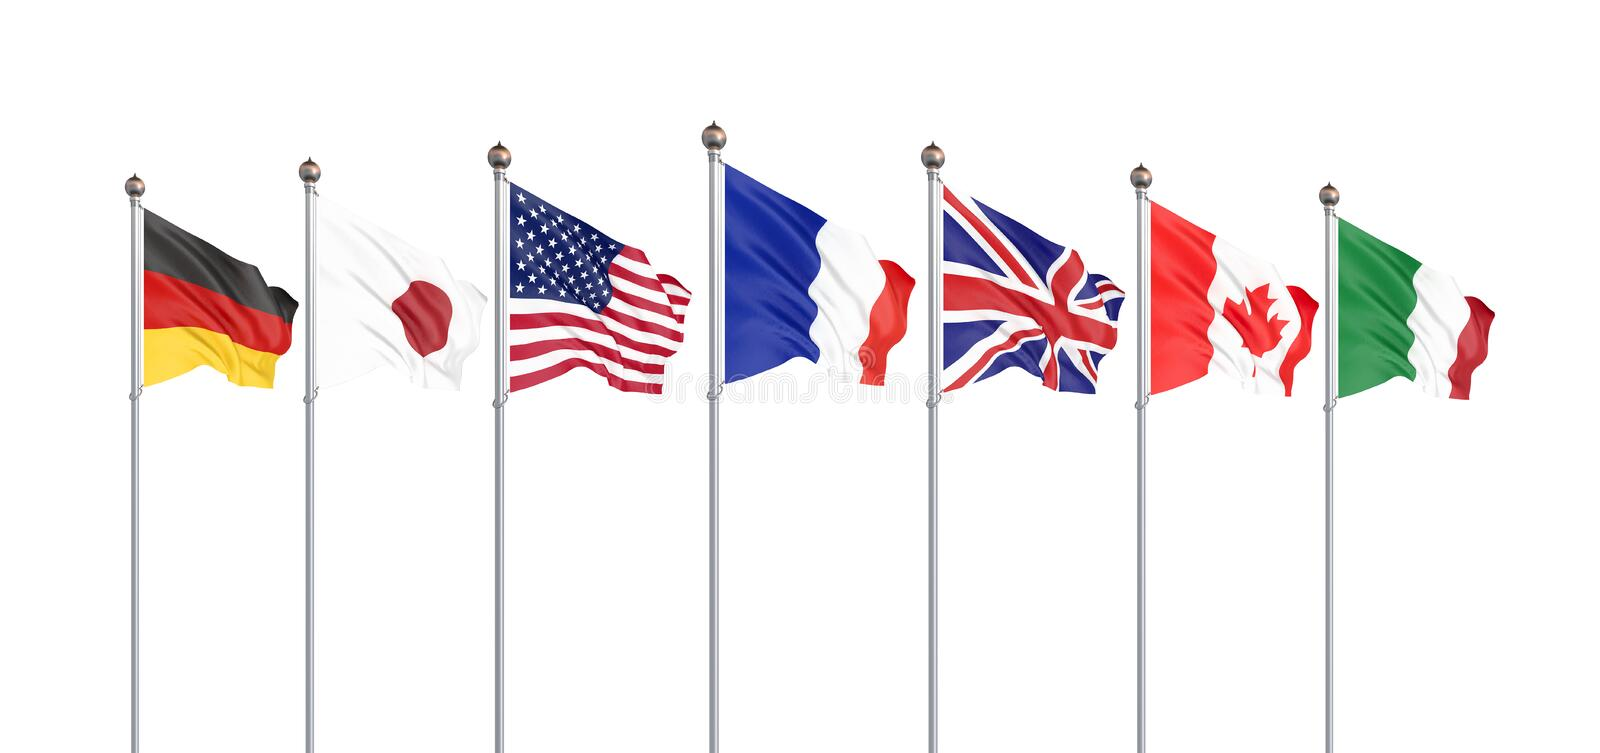 G7 flags Silk waving flags of countries of Group of Seven Canada Germany Italy France Japan USA states United Kingdom 2019. Big stock illustration